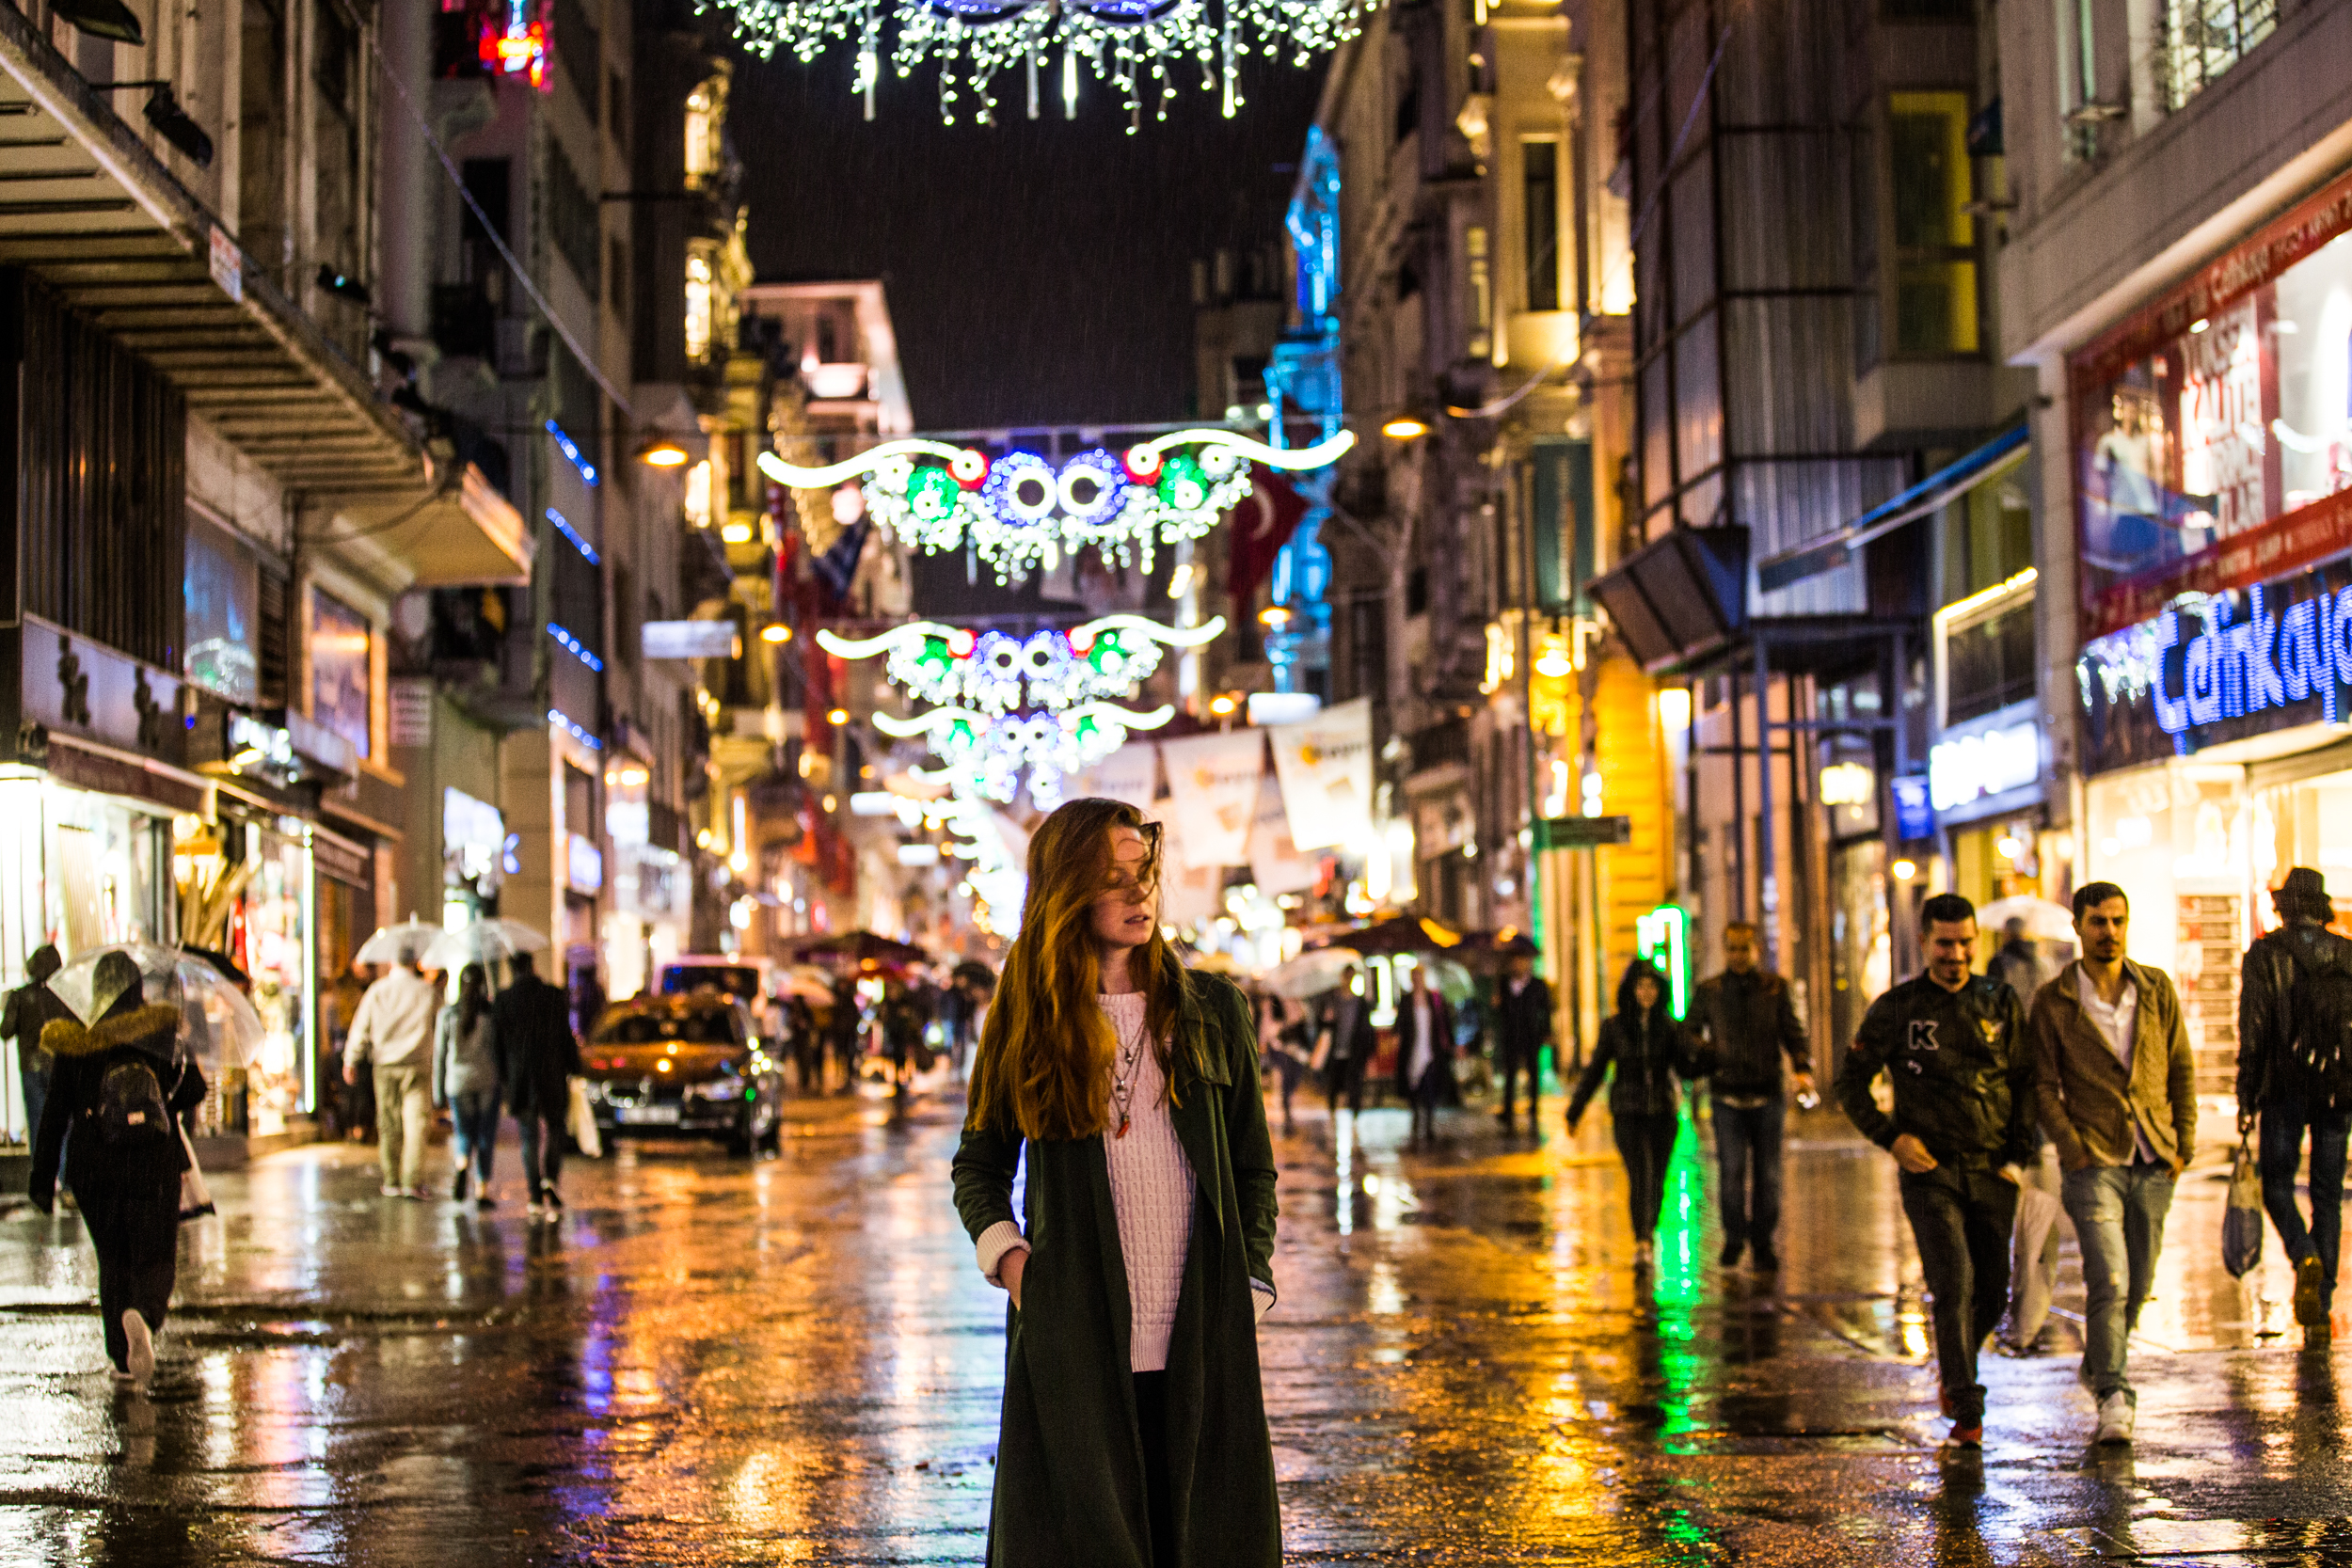 Rainy night in Taksim. Photo:  Alen Palander